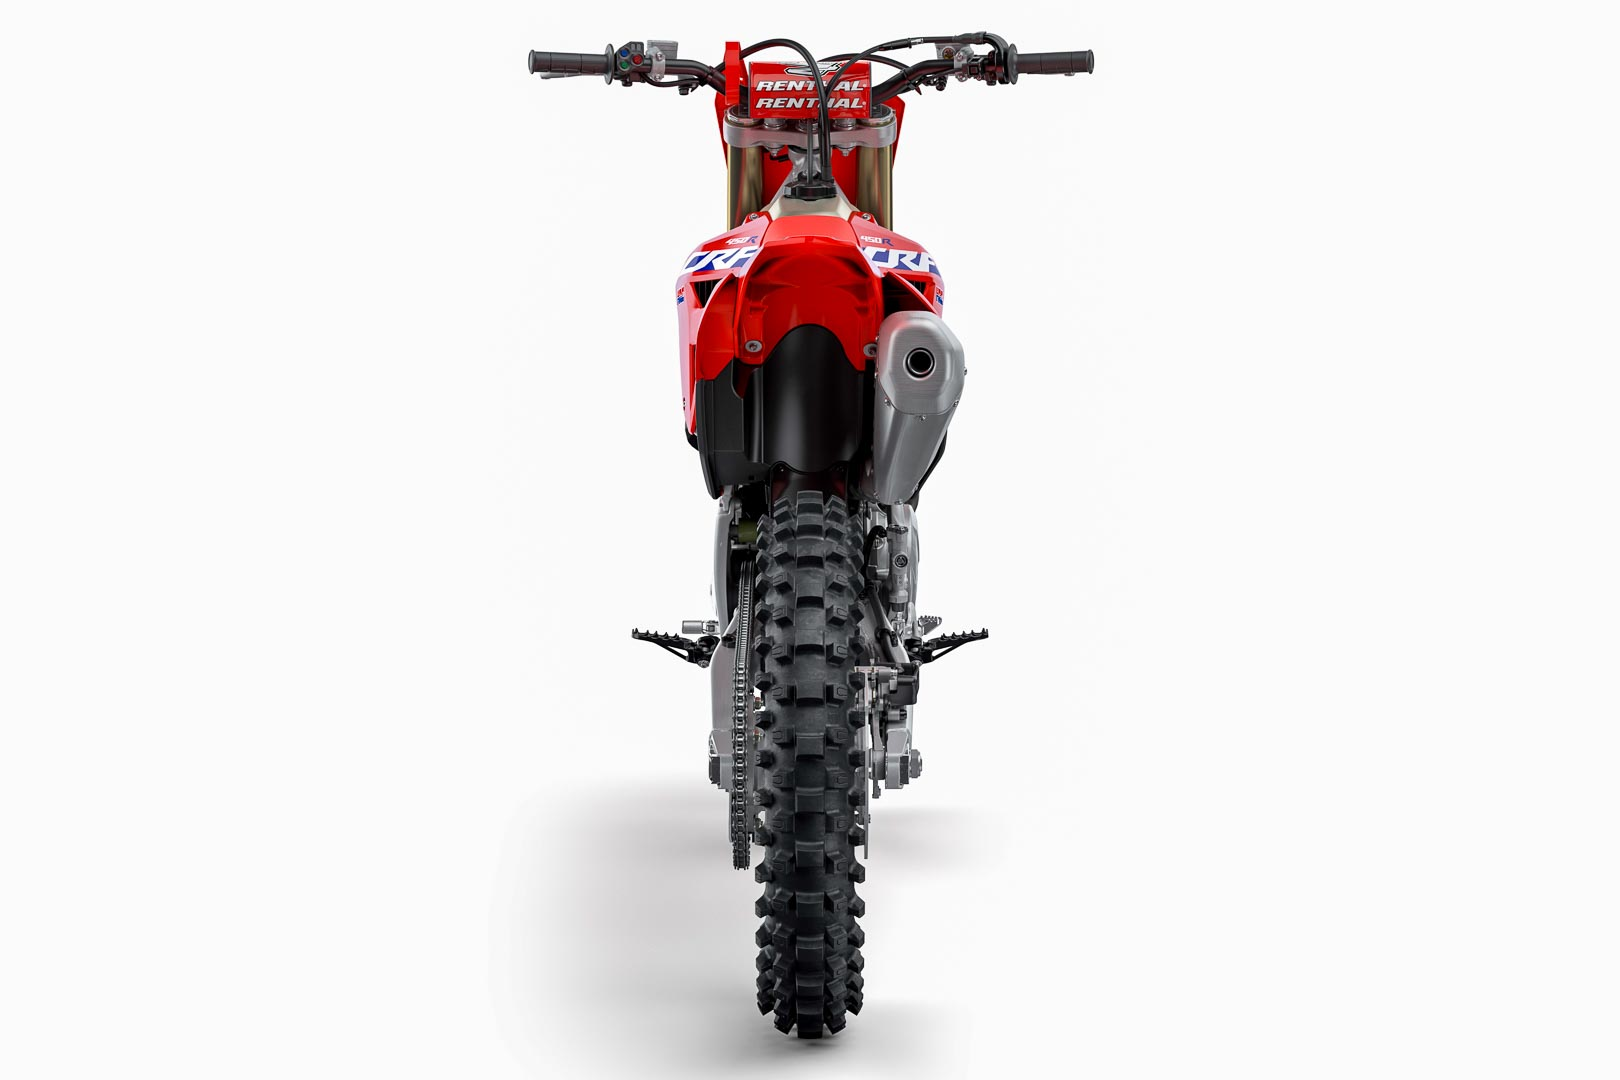 2021 Honda CRF450R First Look: 22 Fast Facts Ultimate ...